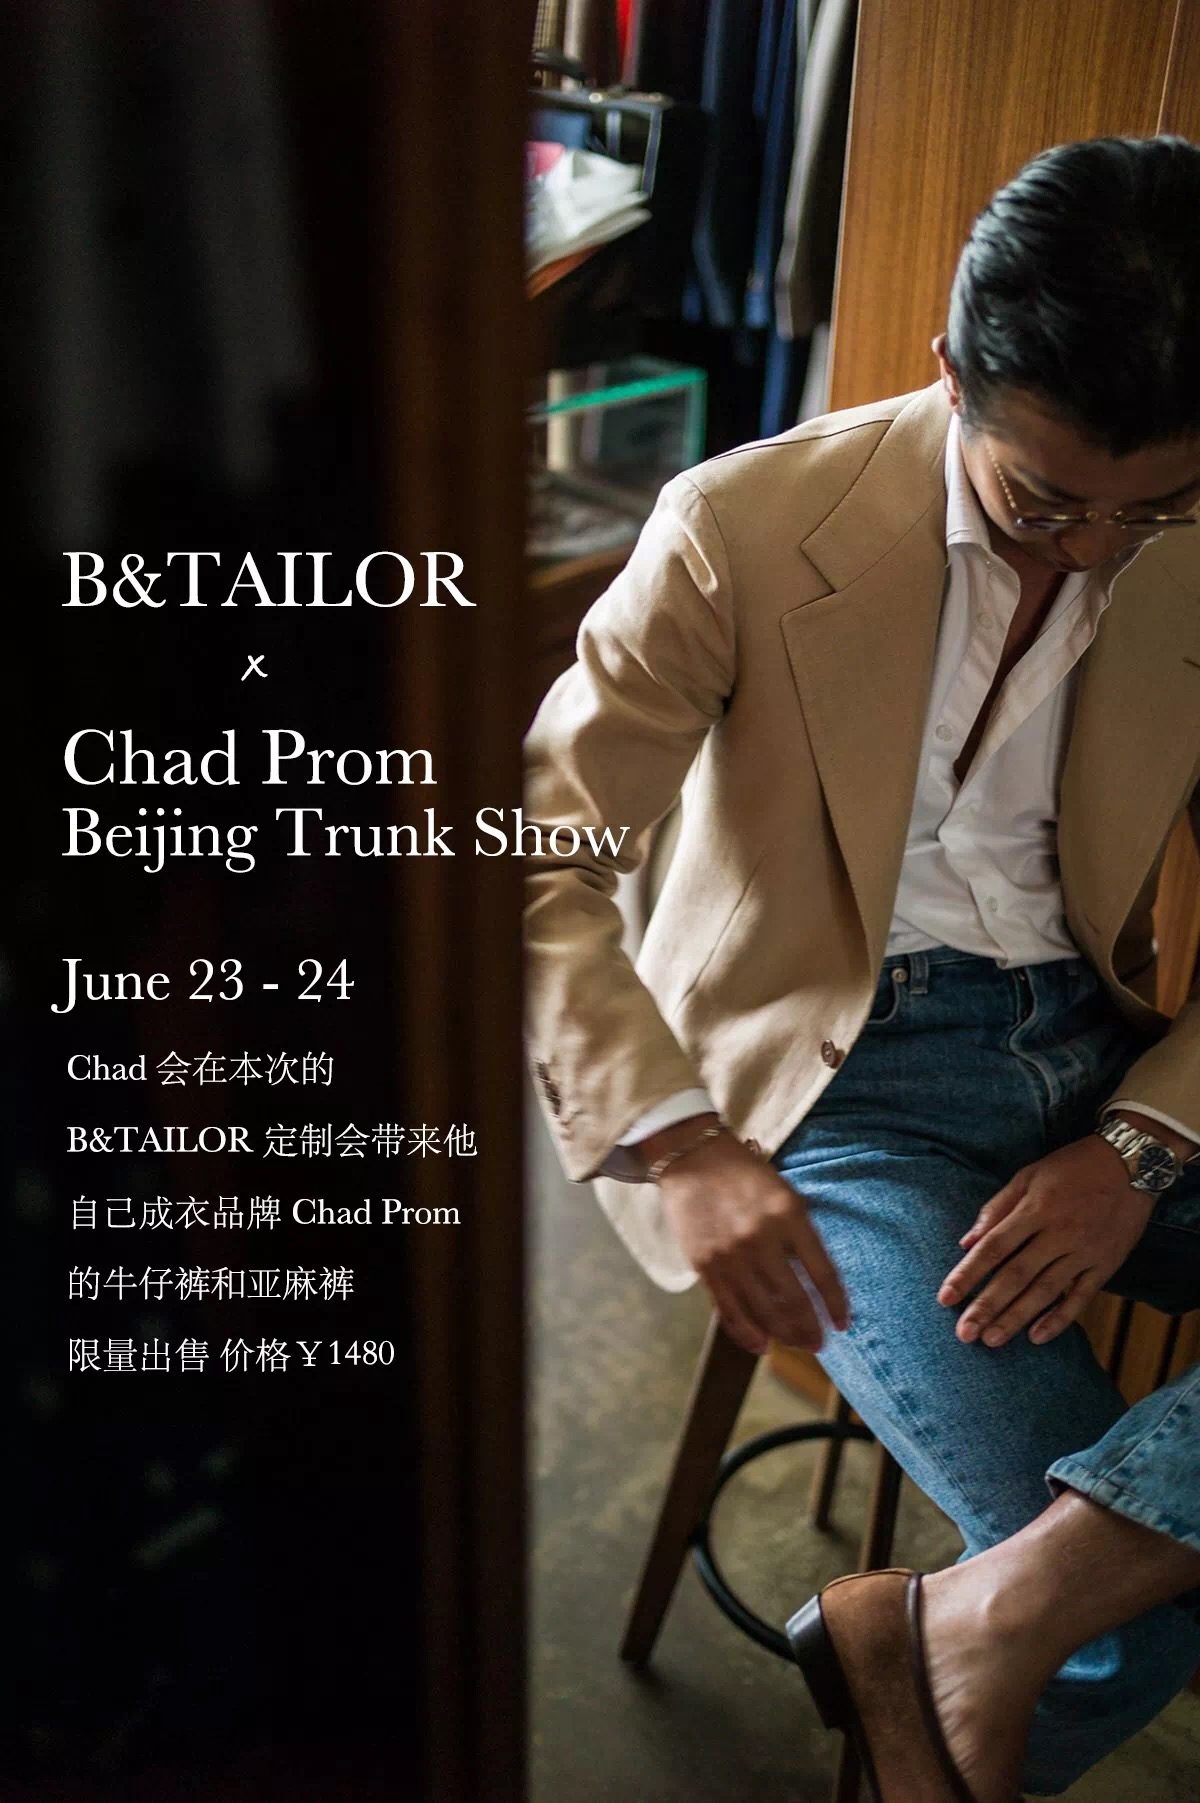 B&Tailor Back in Beijing; June 23-24